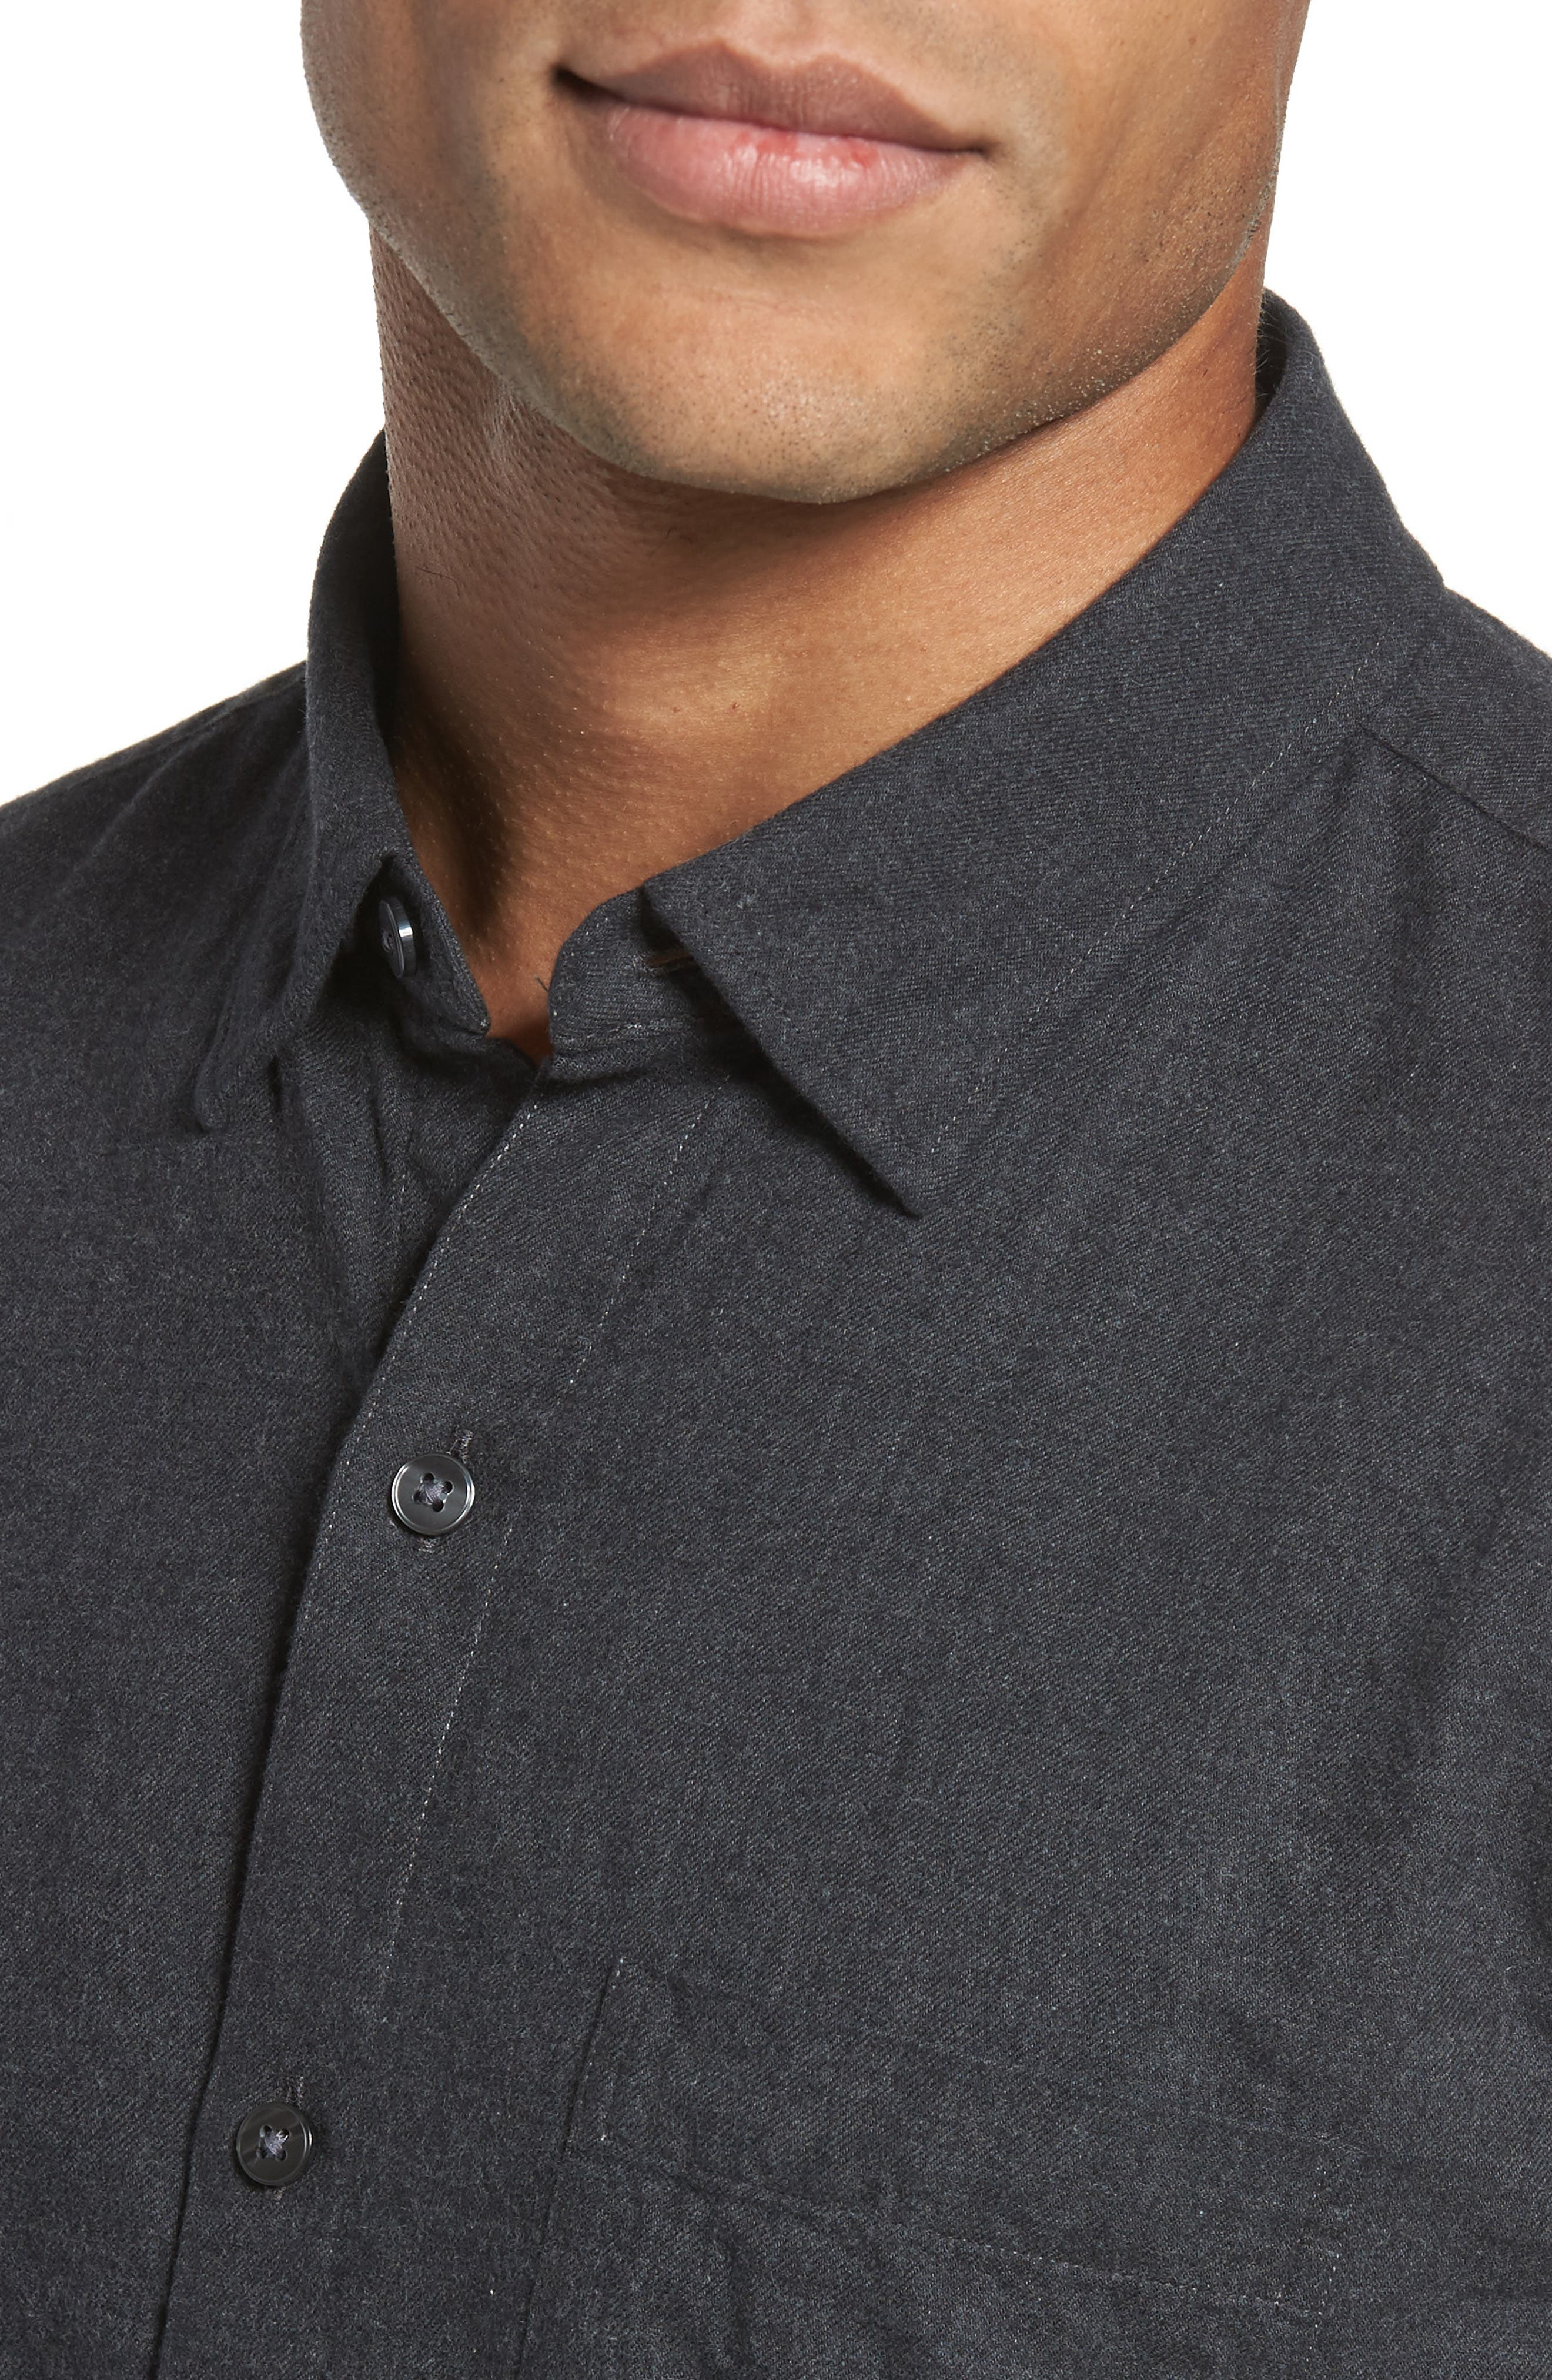 Slim Fit Brushed Twill Sport Shirt,                             Alternate thumbnail 2, color,                             Heather Charcoal